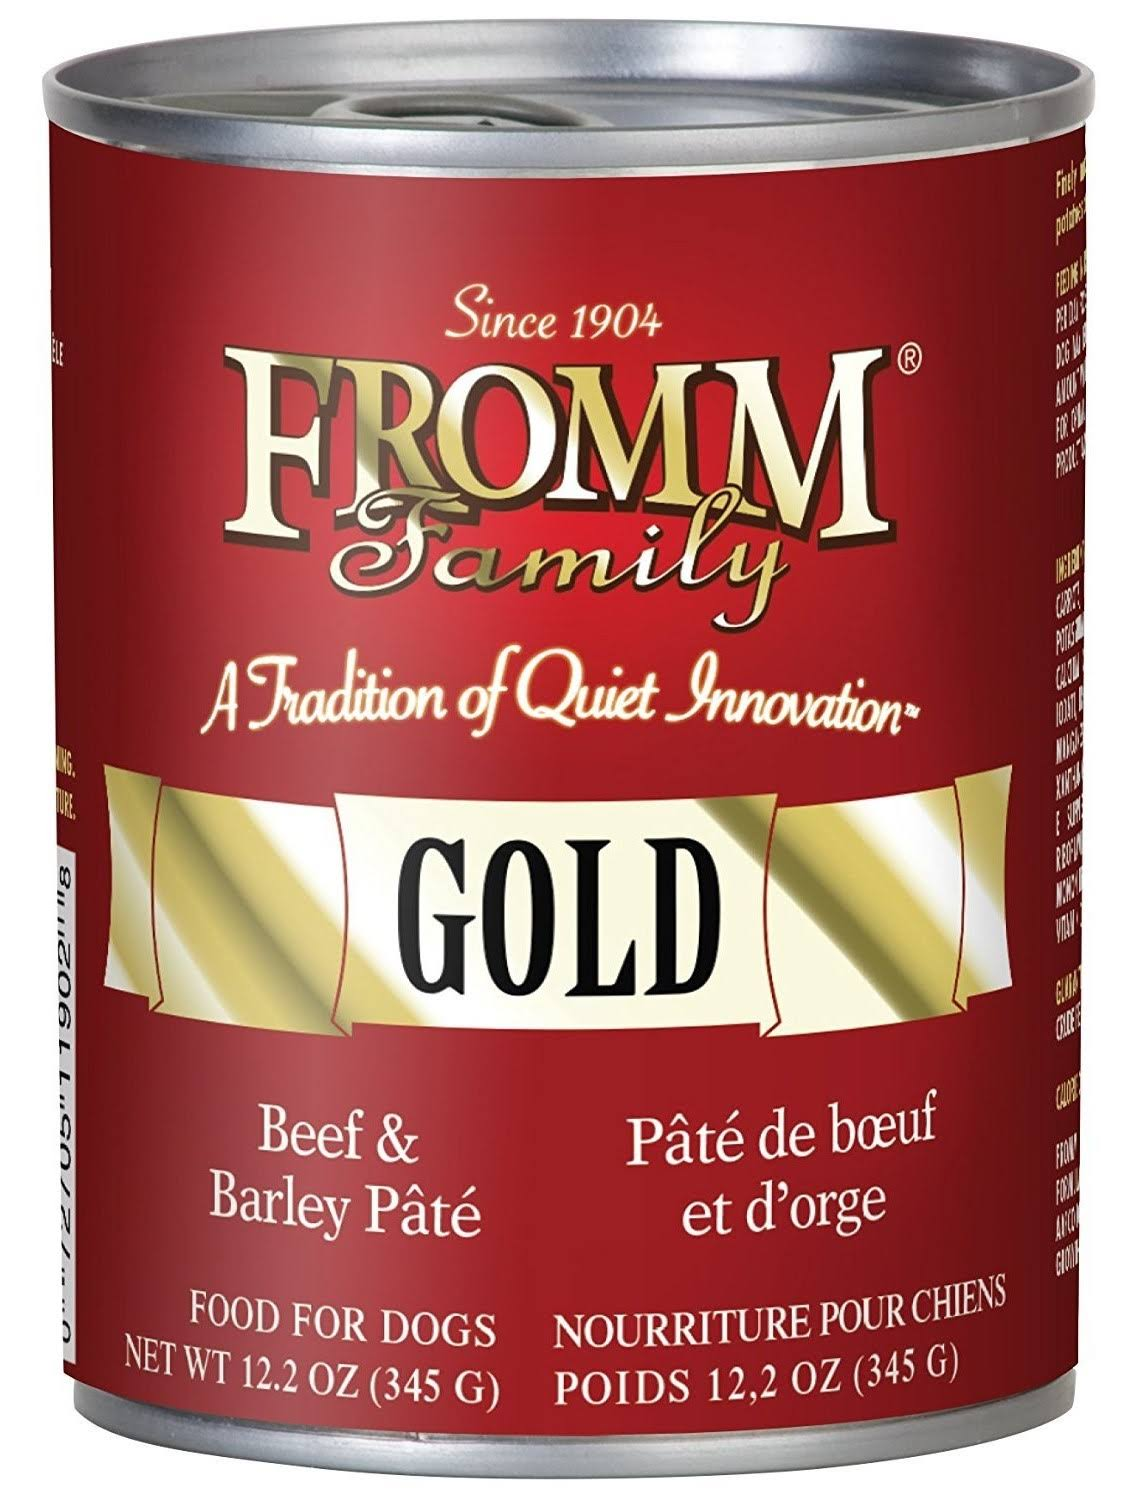 Fromm Family Gold Canned Dog Food - Beef & Barley Pate